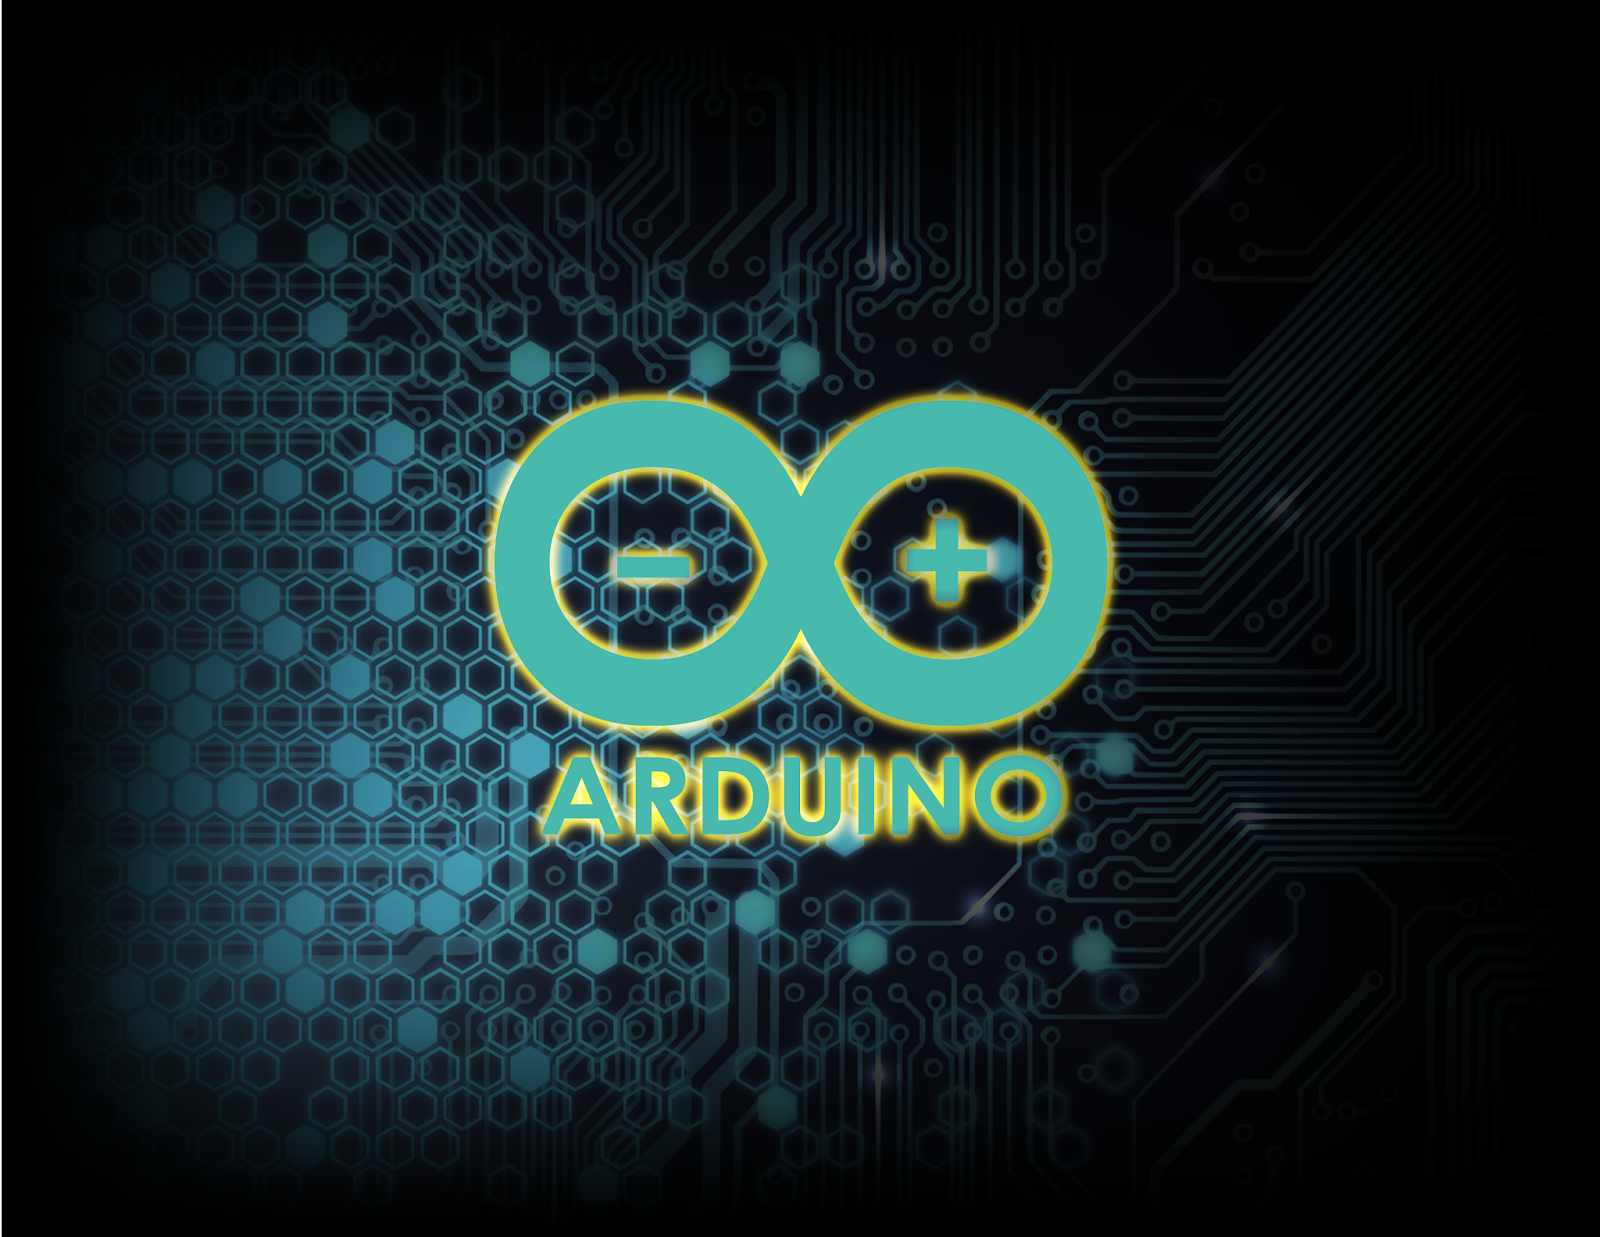 Arduino wallpaper pixshark images galleries